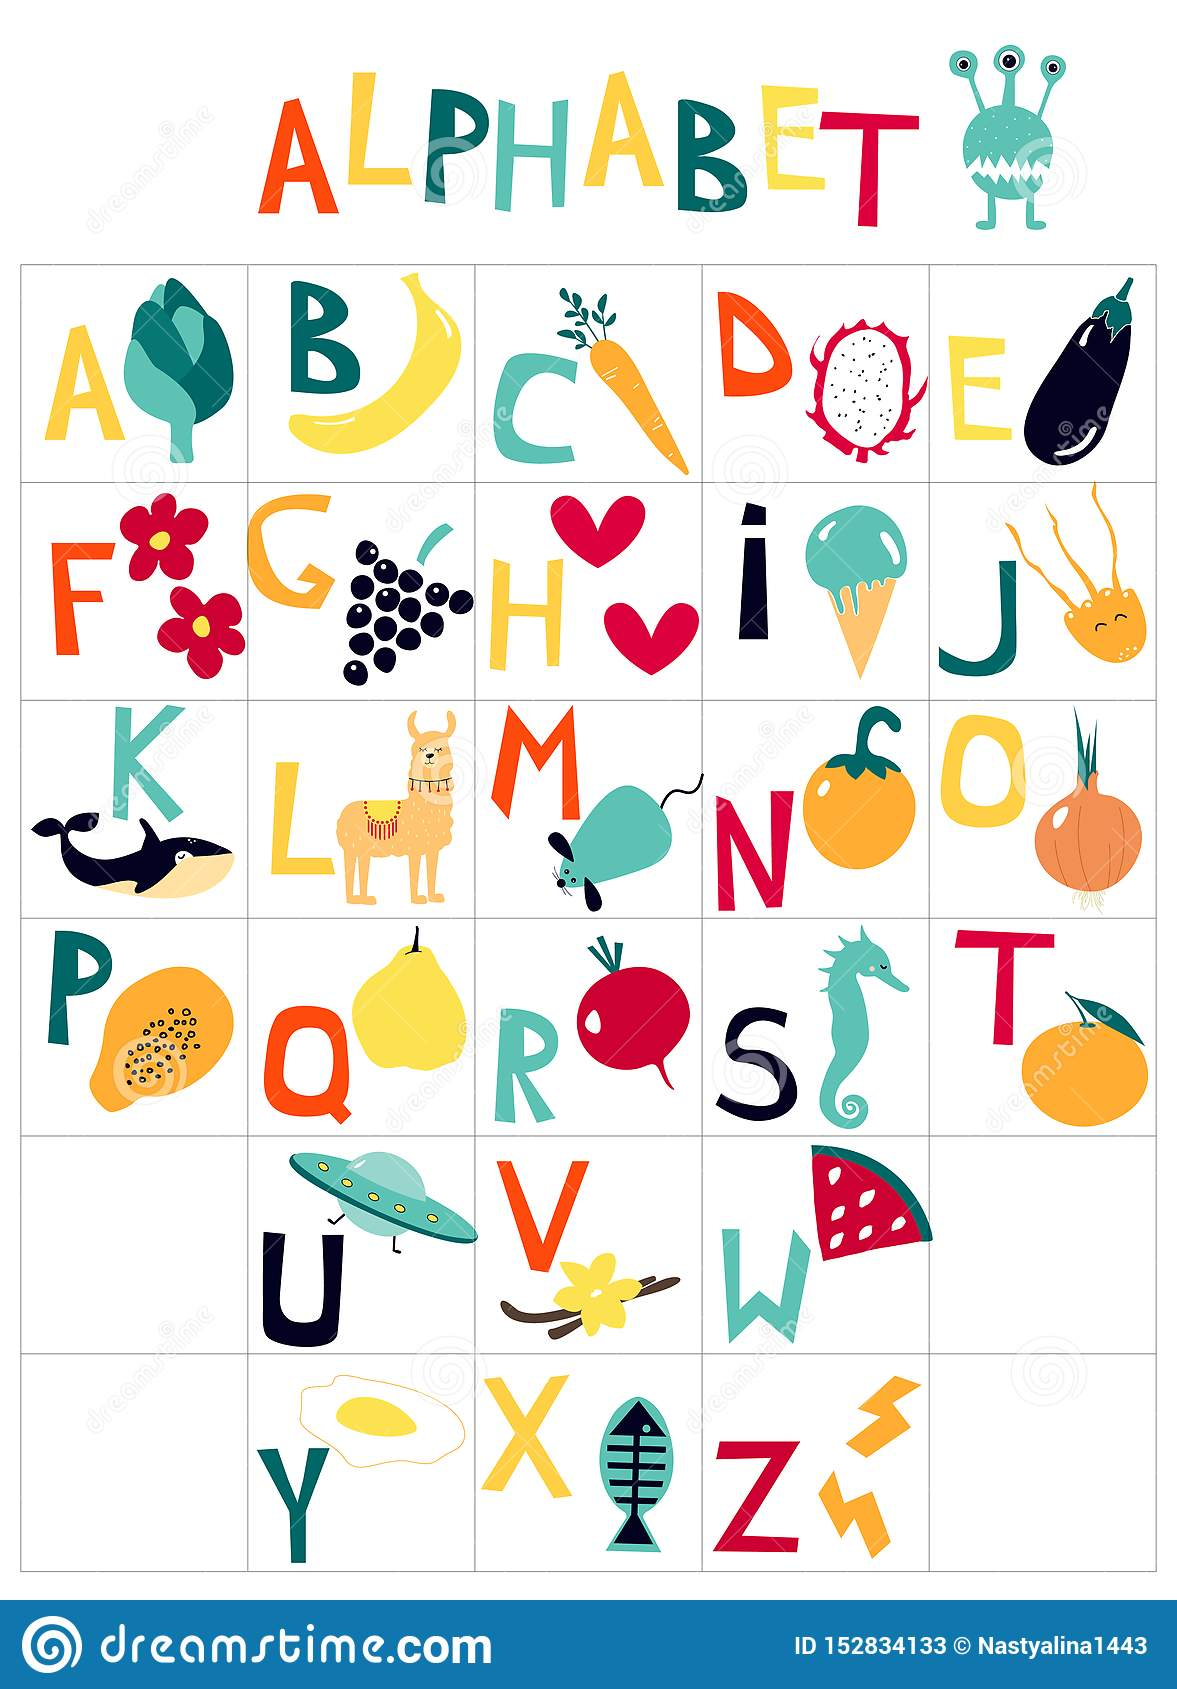 English children`s alphabet with cartoon pictures on the theme of fruit, vegetables, animals.